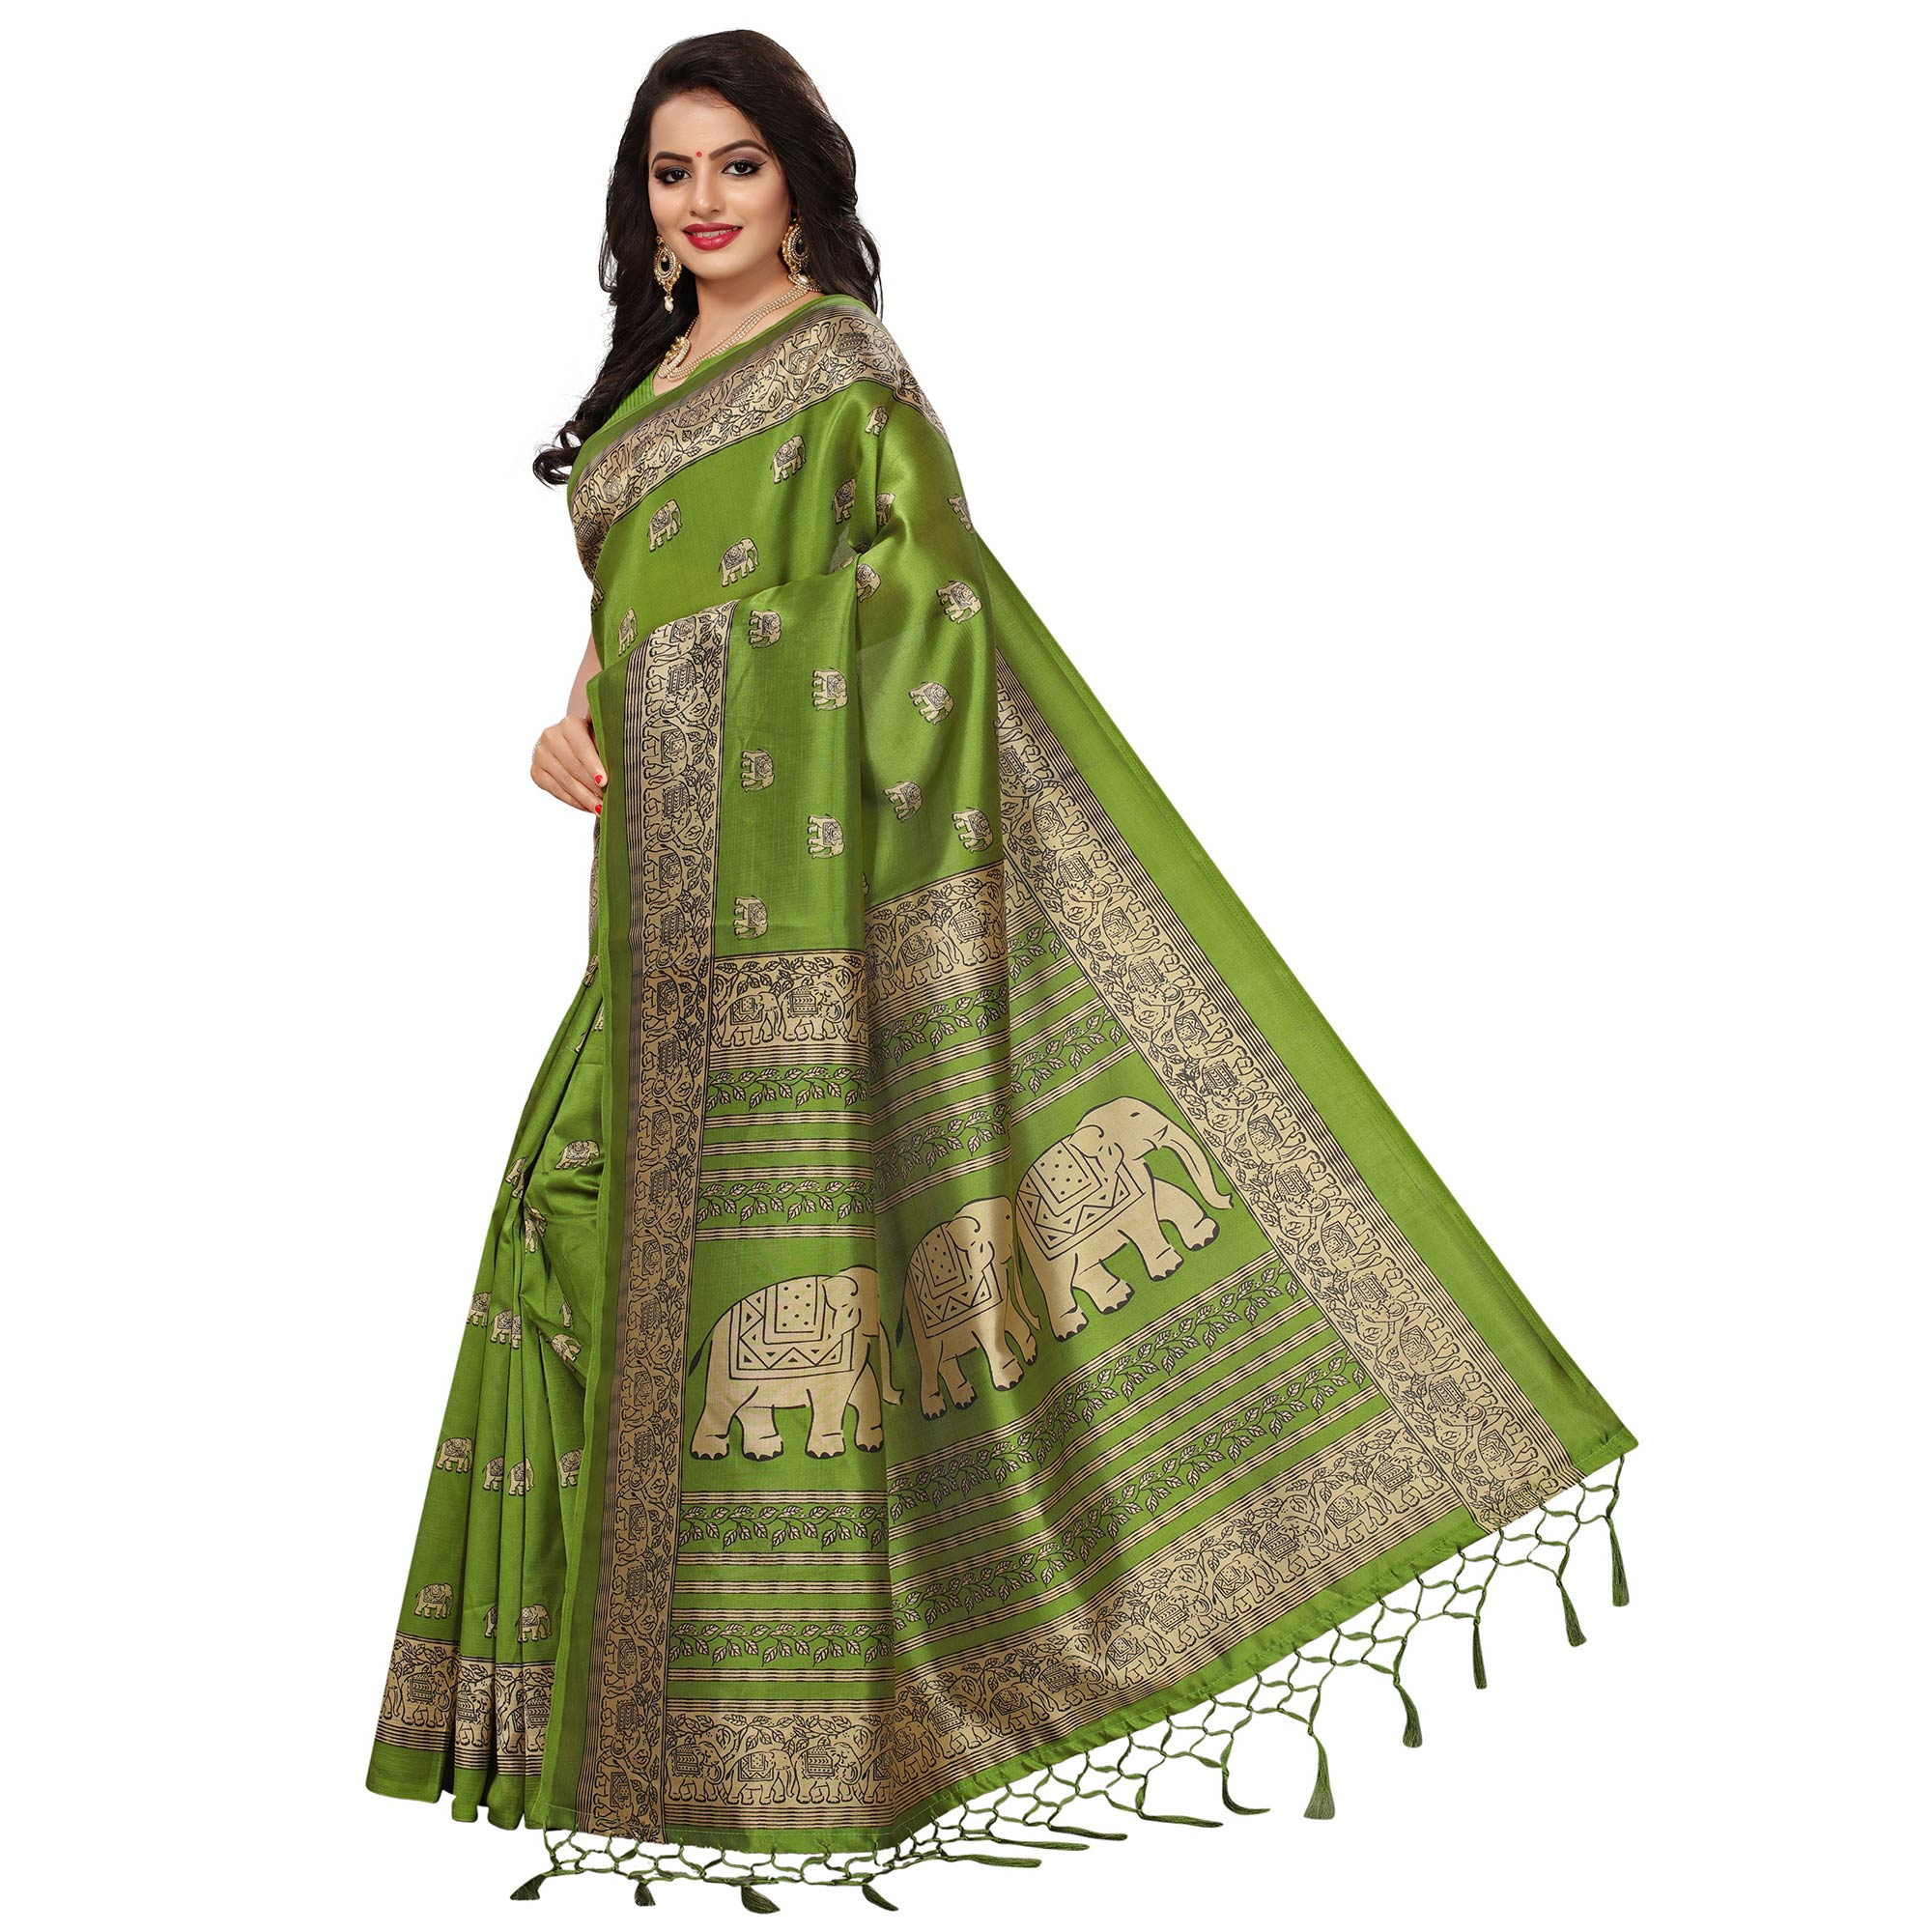 Lovely Green Colored Festive Wear Printed Mysore Art Silk Saree